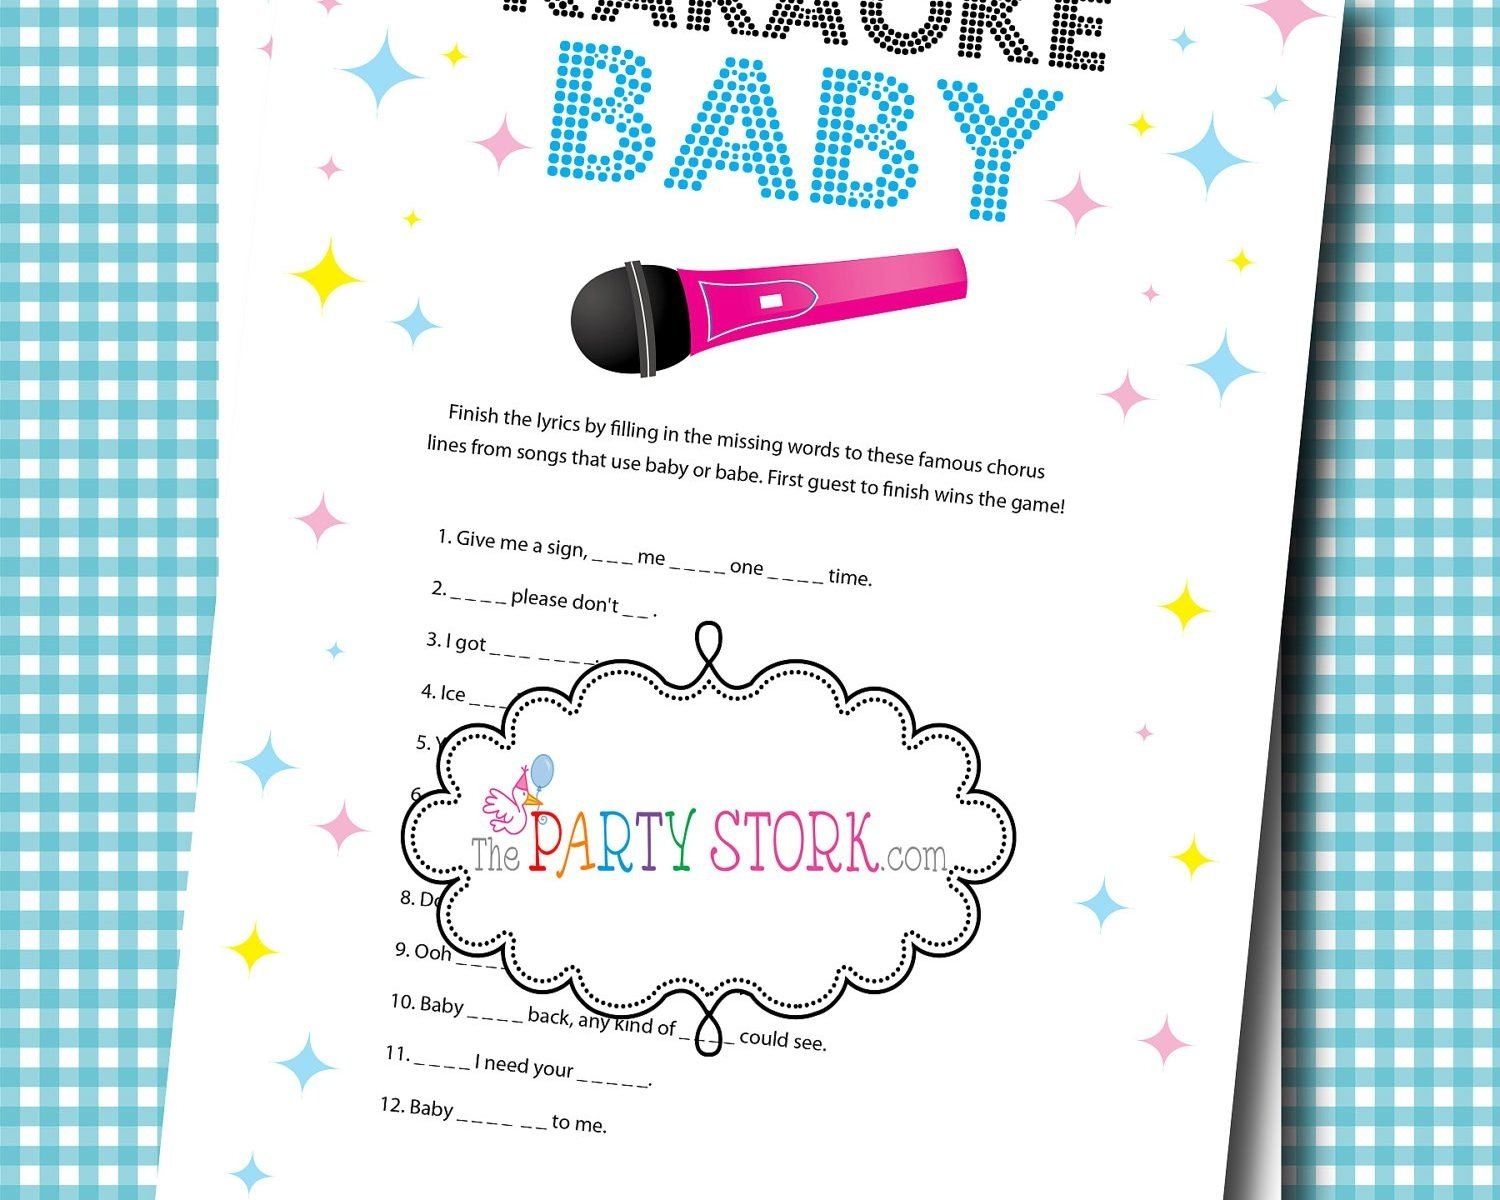 10 Fabulous Unique Baby Shower Games Ideas baby shower games ideas free printable and for large groups 2020